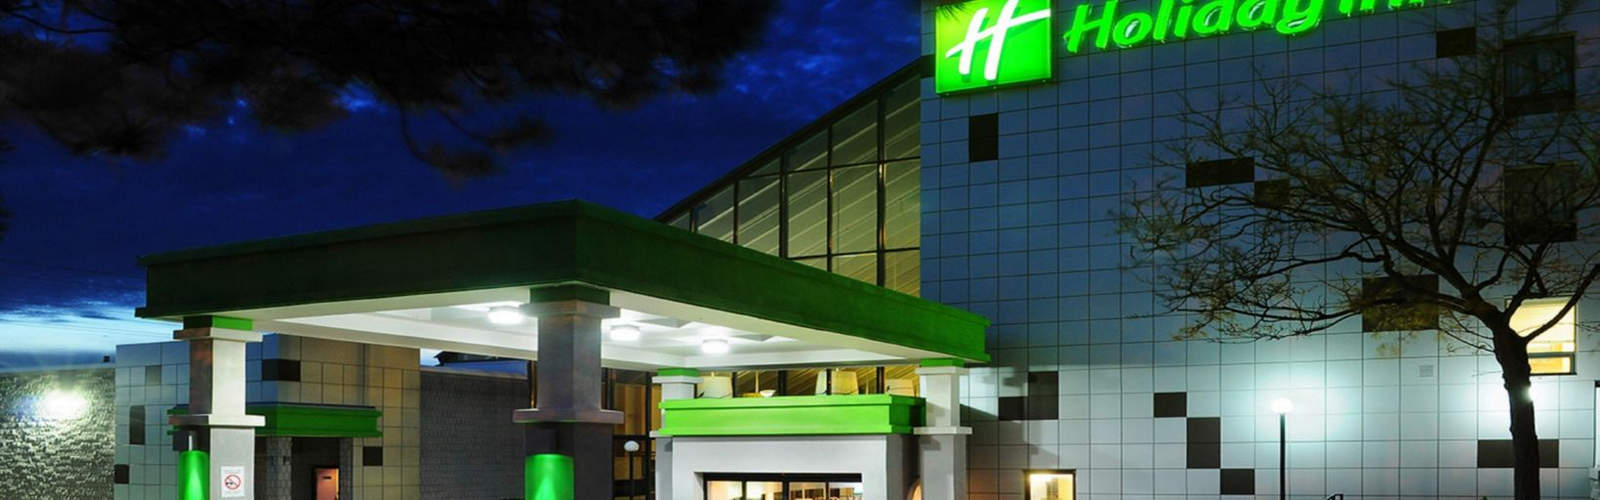 Holiday Inn Guelph Hotel & Conference Centre